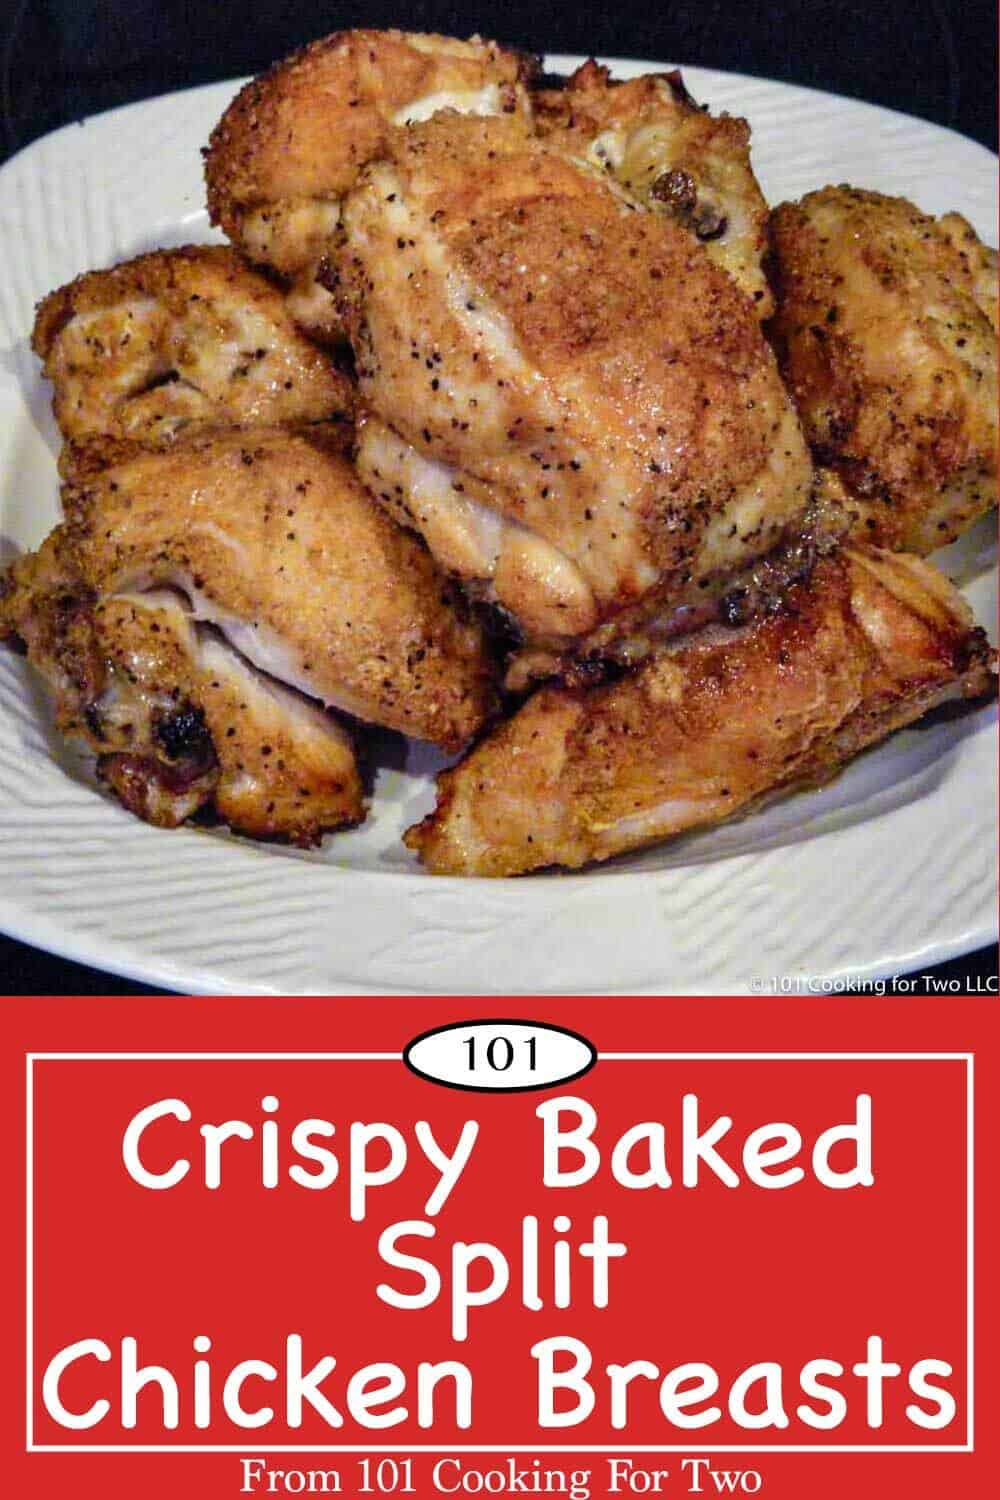 Learn the secret to great tasting, moist, and crispy baked split chicken breasts. Just follow these easy step by step photo instructions to get it right first time and every time. #SplitChickenBreast #SkinOnChickenBreast #BoneInChickenBreast #BakedChickenBreast #CrispyChicken